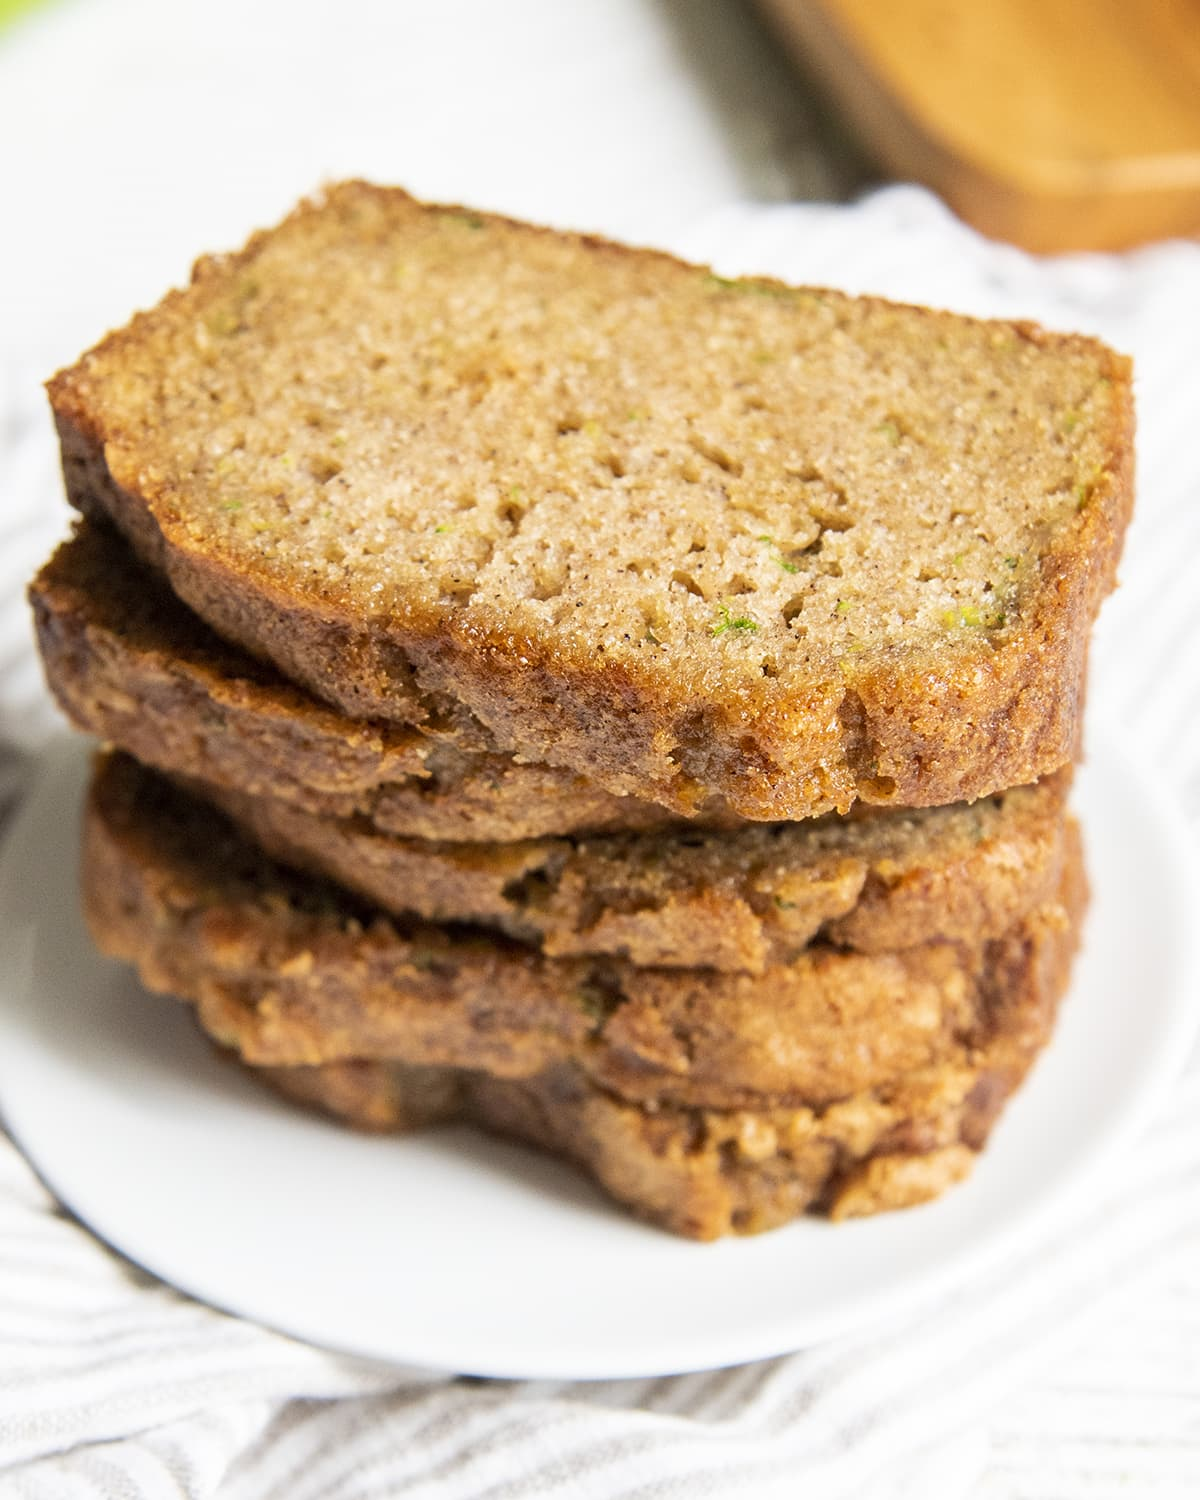 A stack of sliced zucchini bread pieces on a white plate.